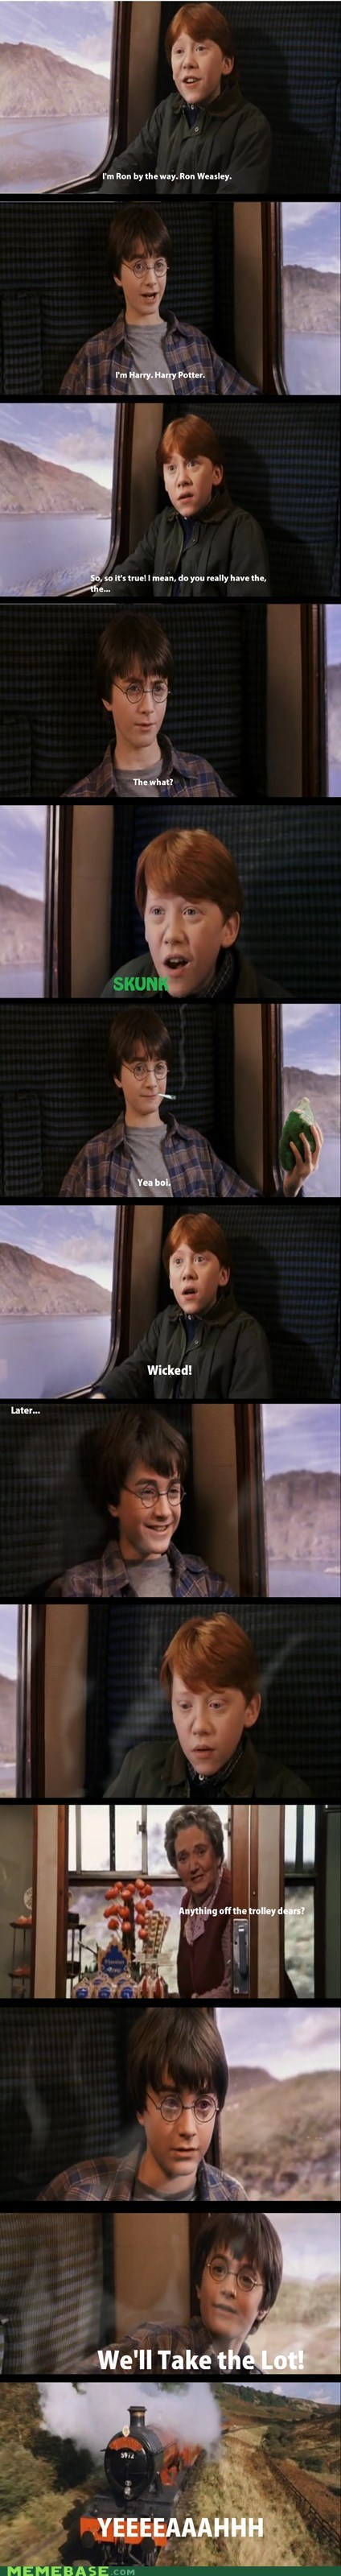 The Truth Behind Harry Potter